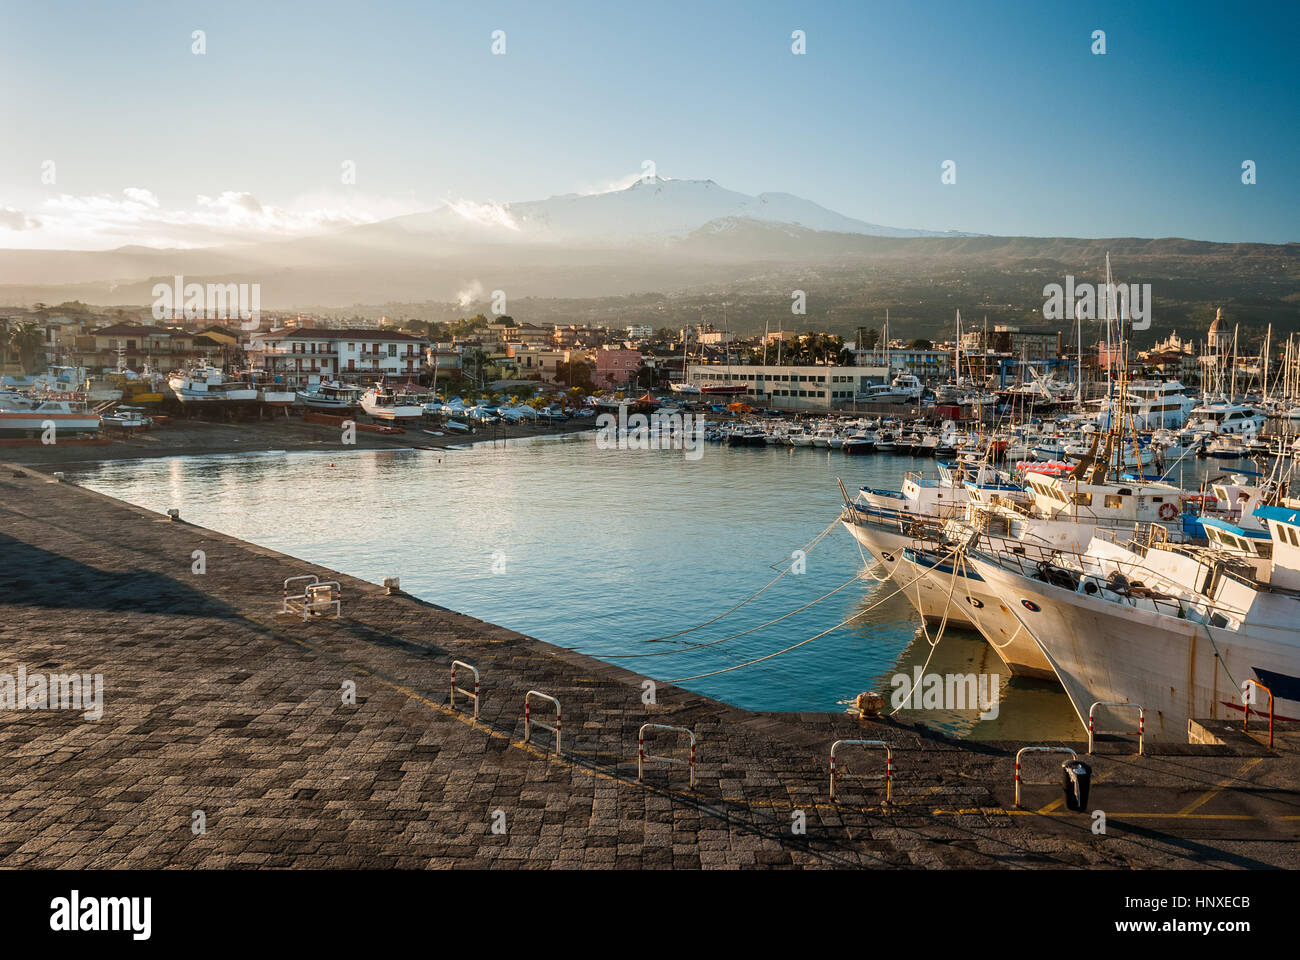 The harbor of Riposto during the sunset; snowy volcano Etna in the background - Stock Image